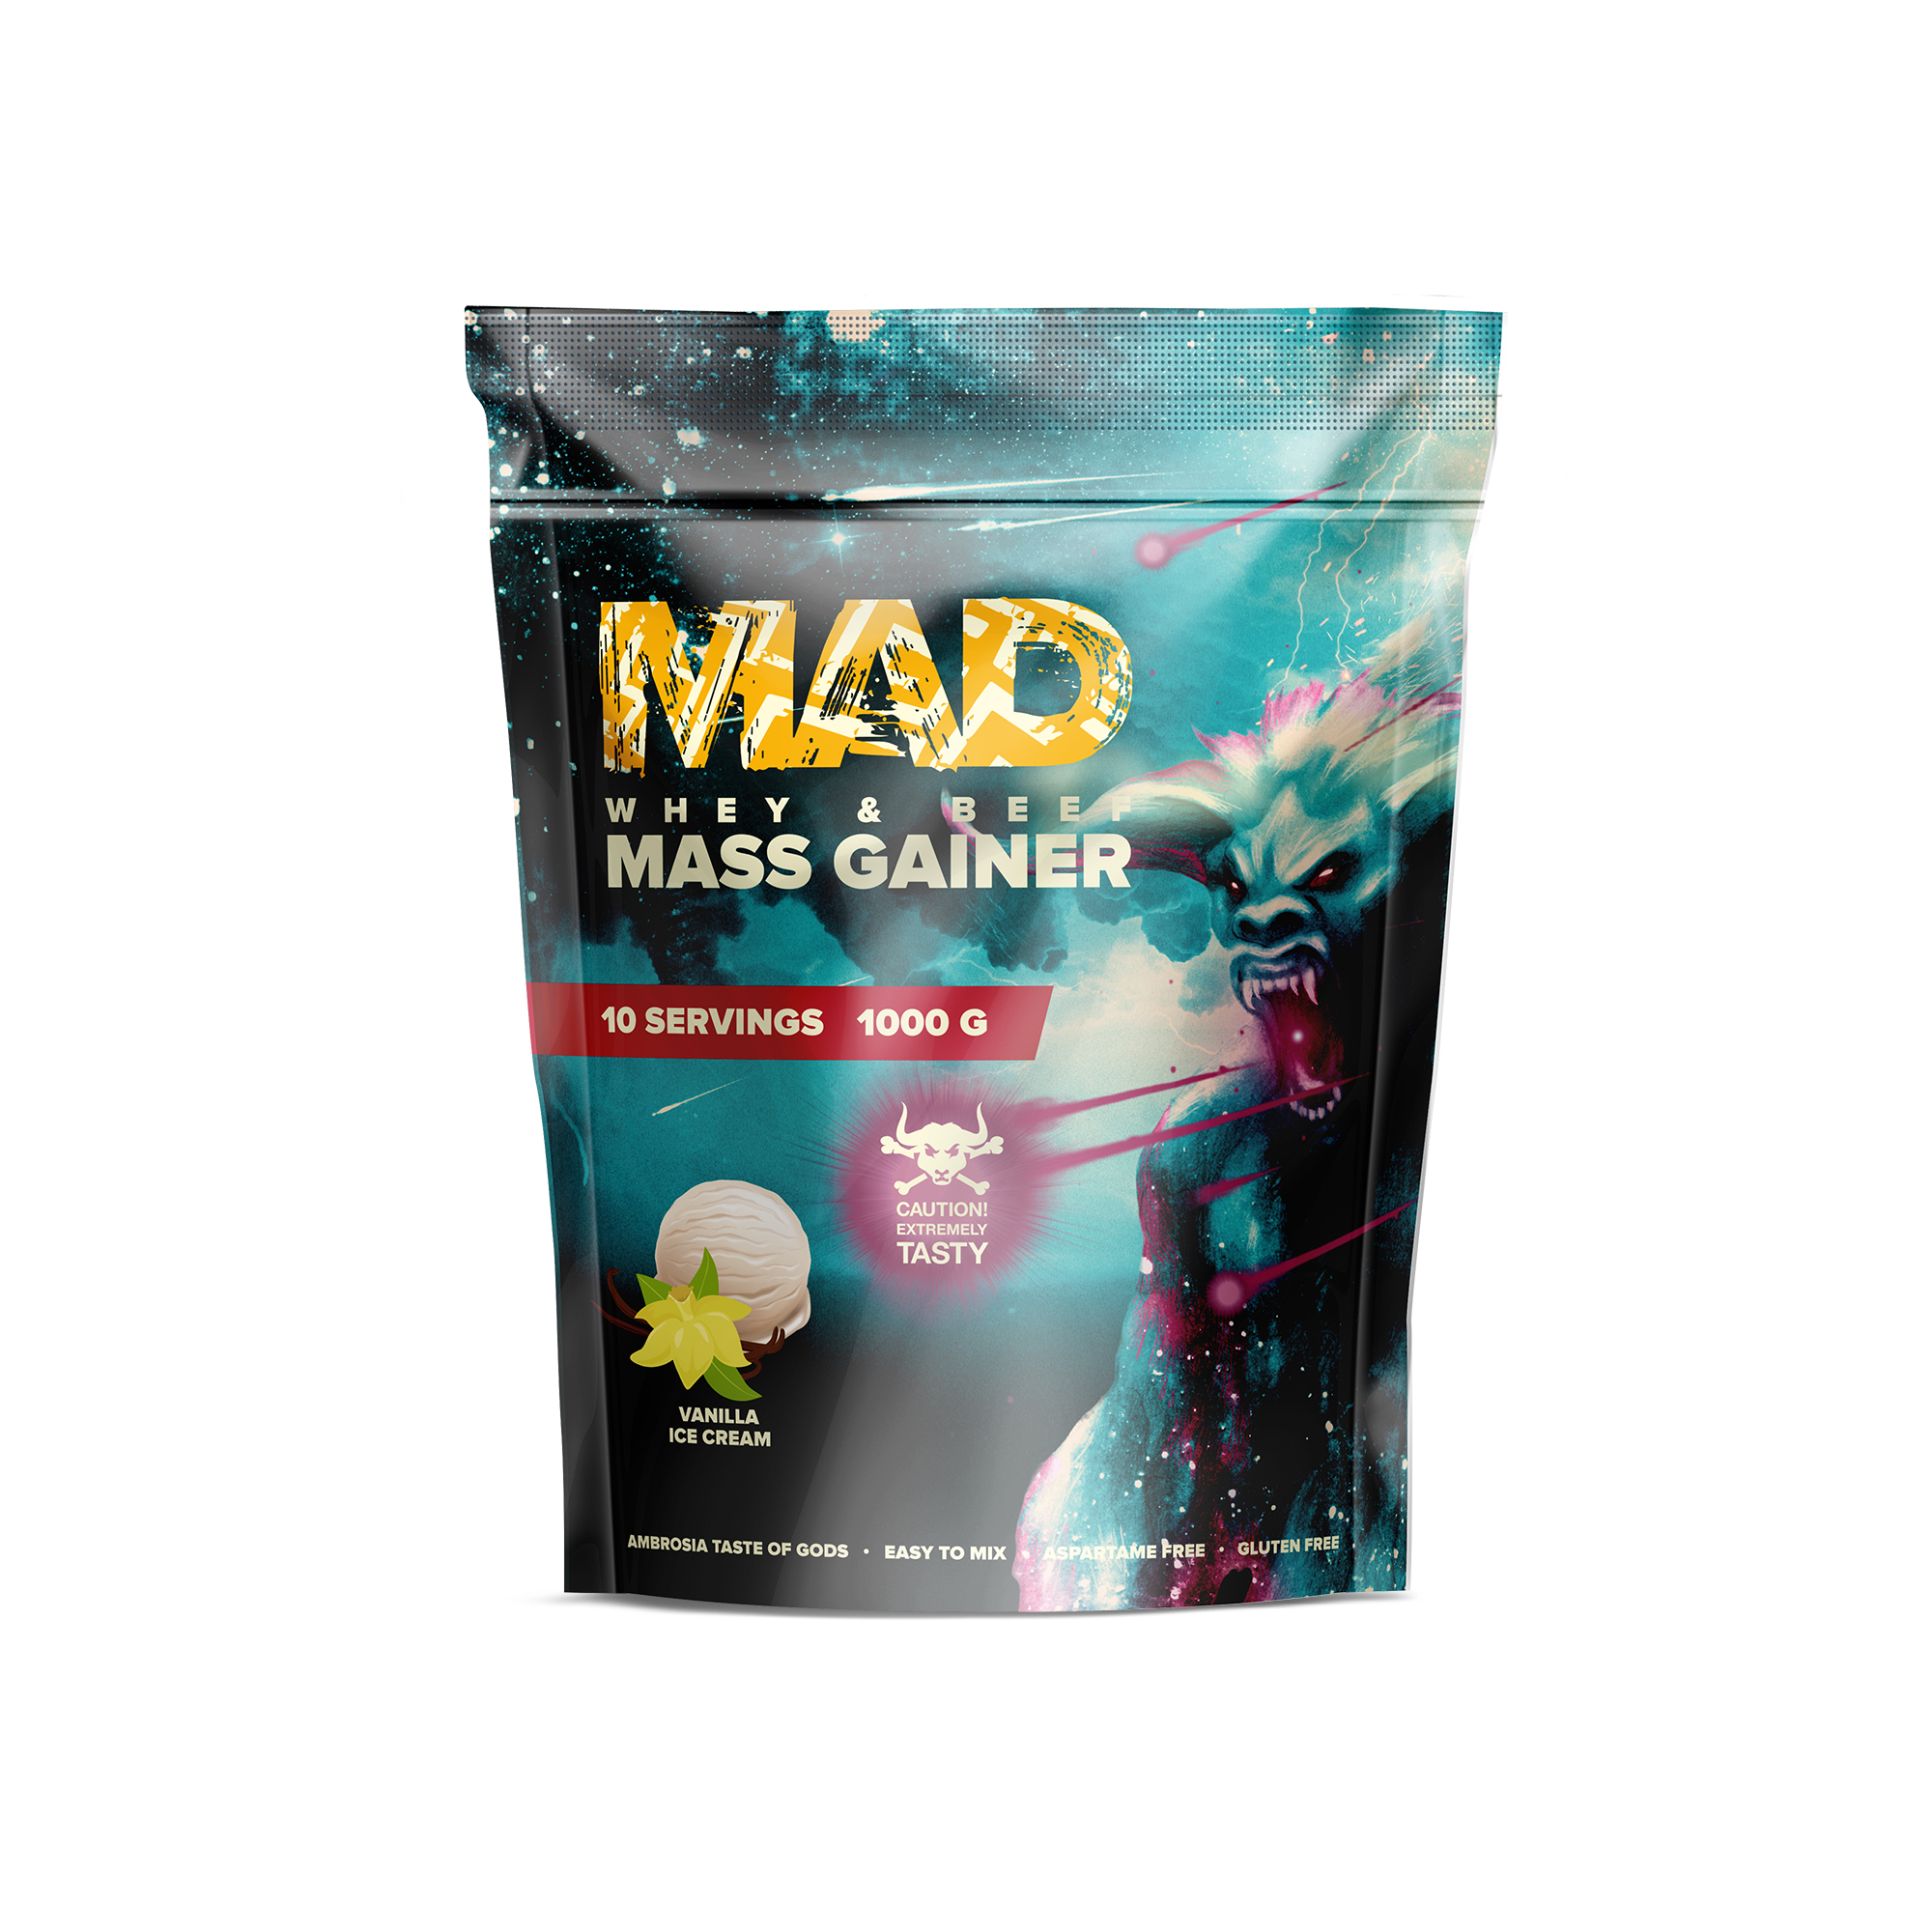 MAD WHEY & BEEF MASS GAINER